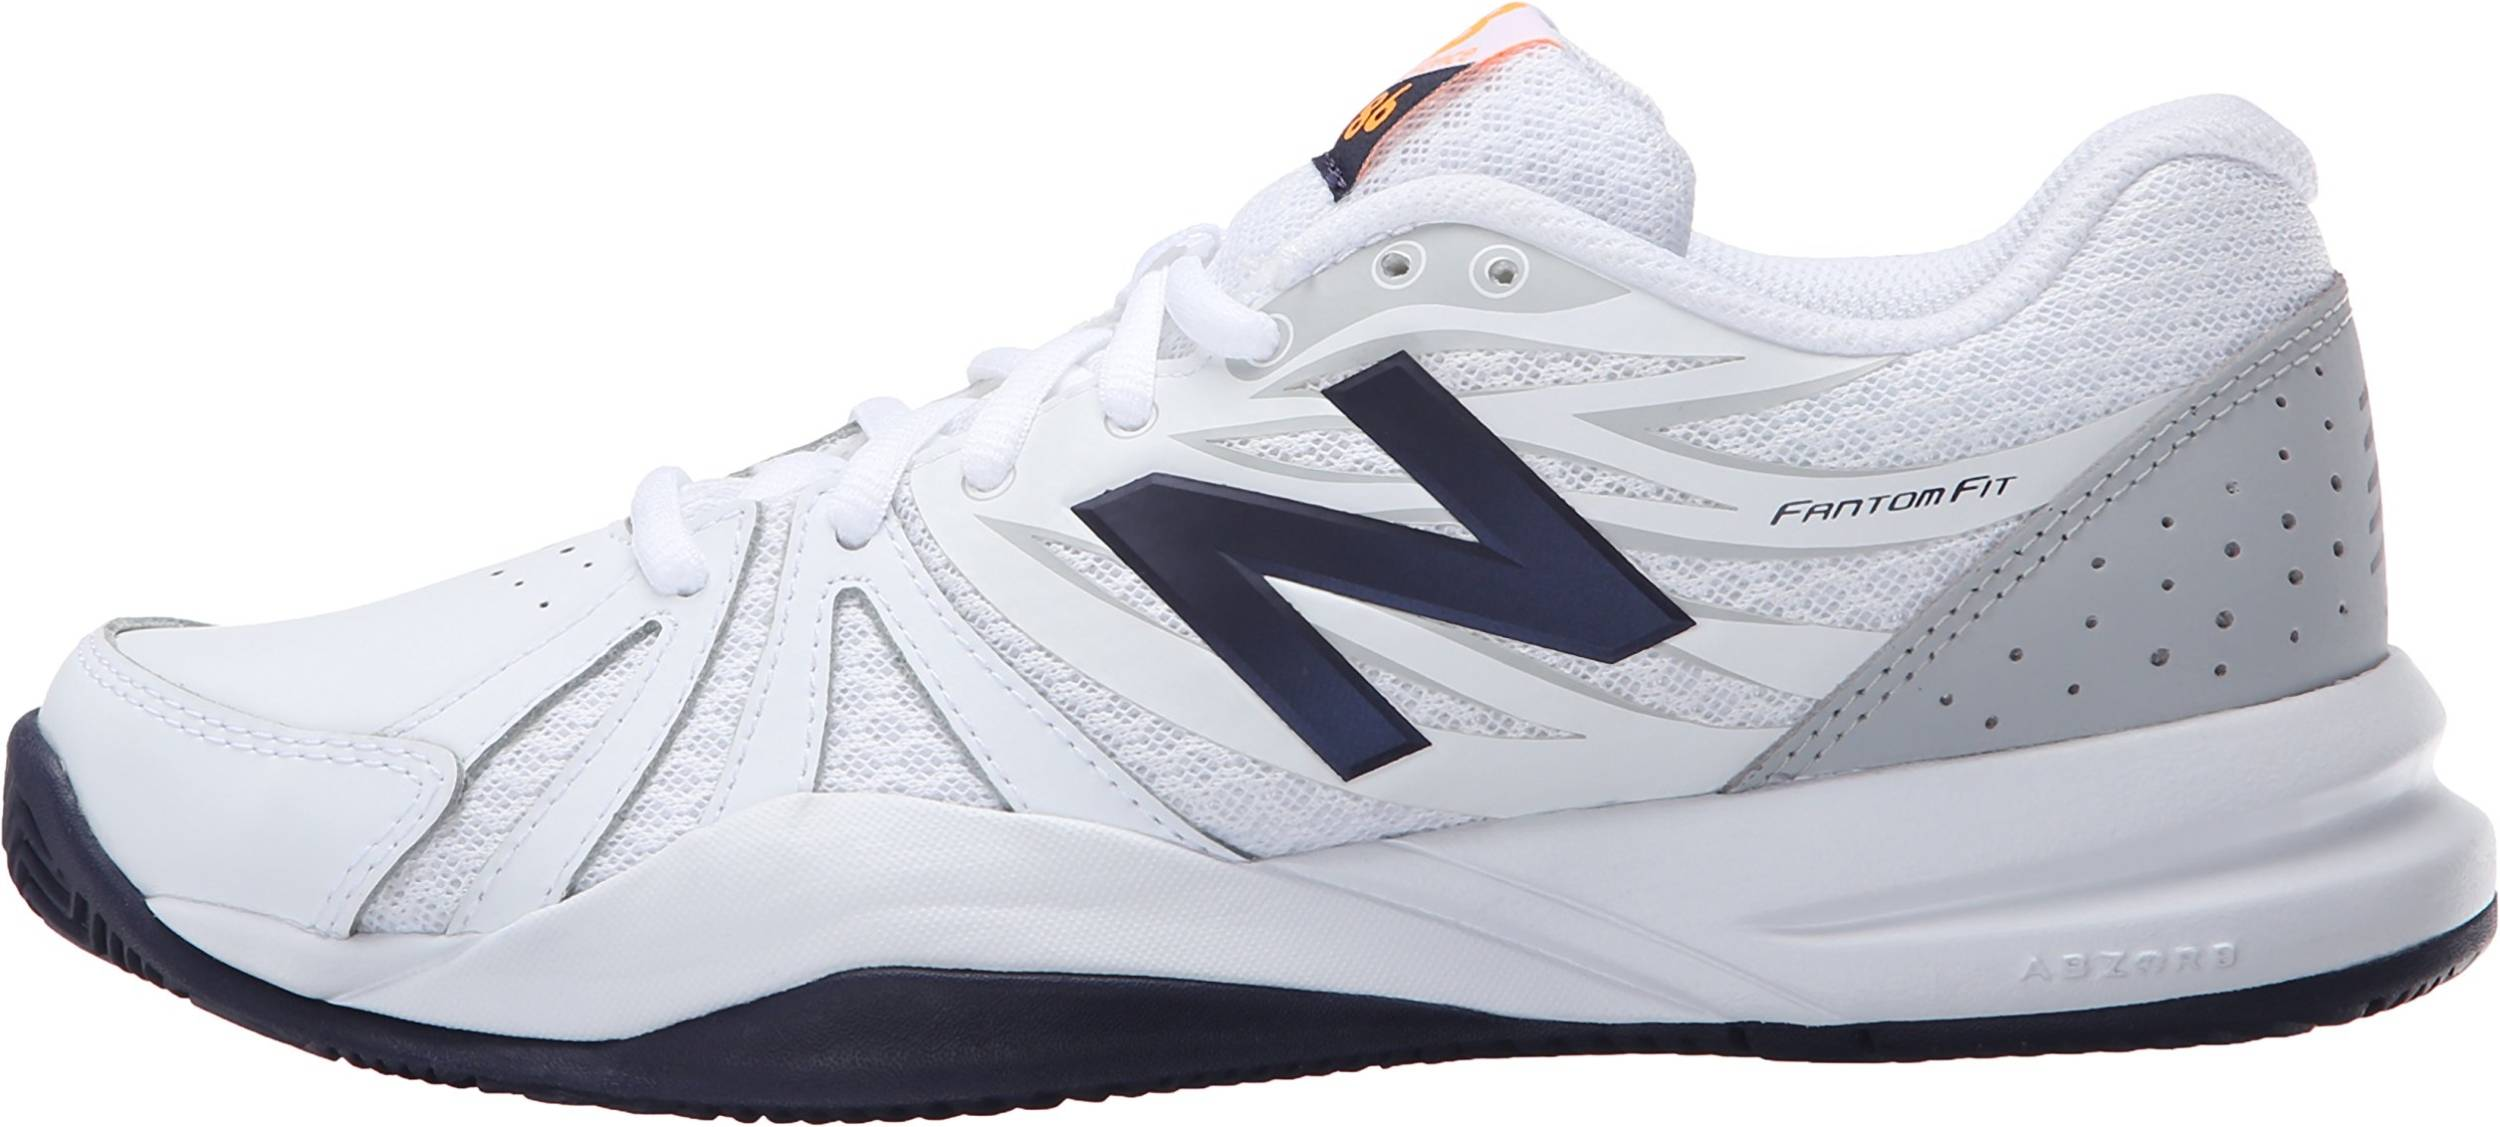 Only $55 + Review of New Balance 786 v2